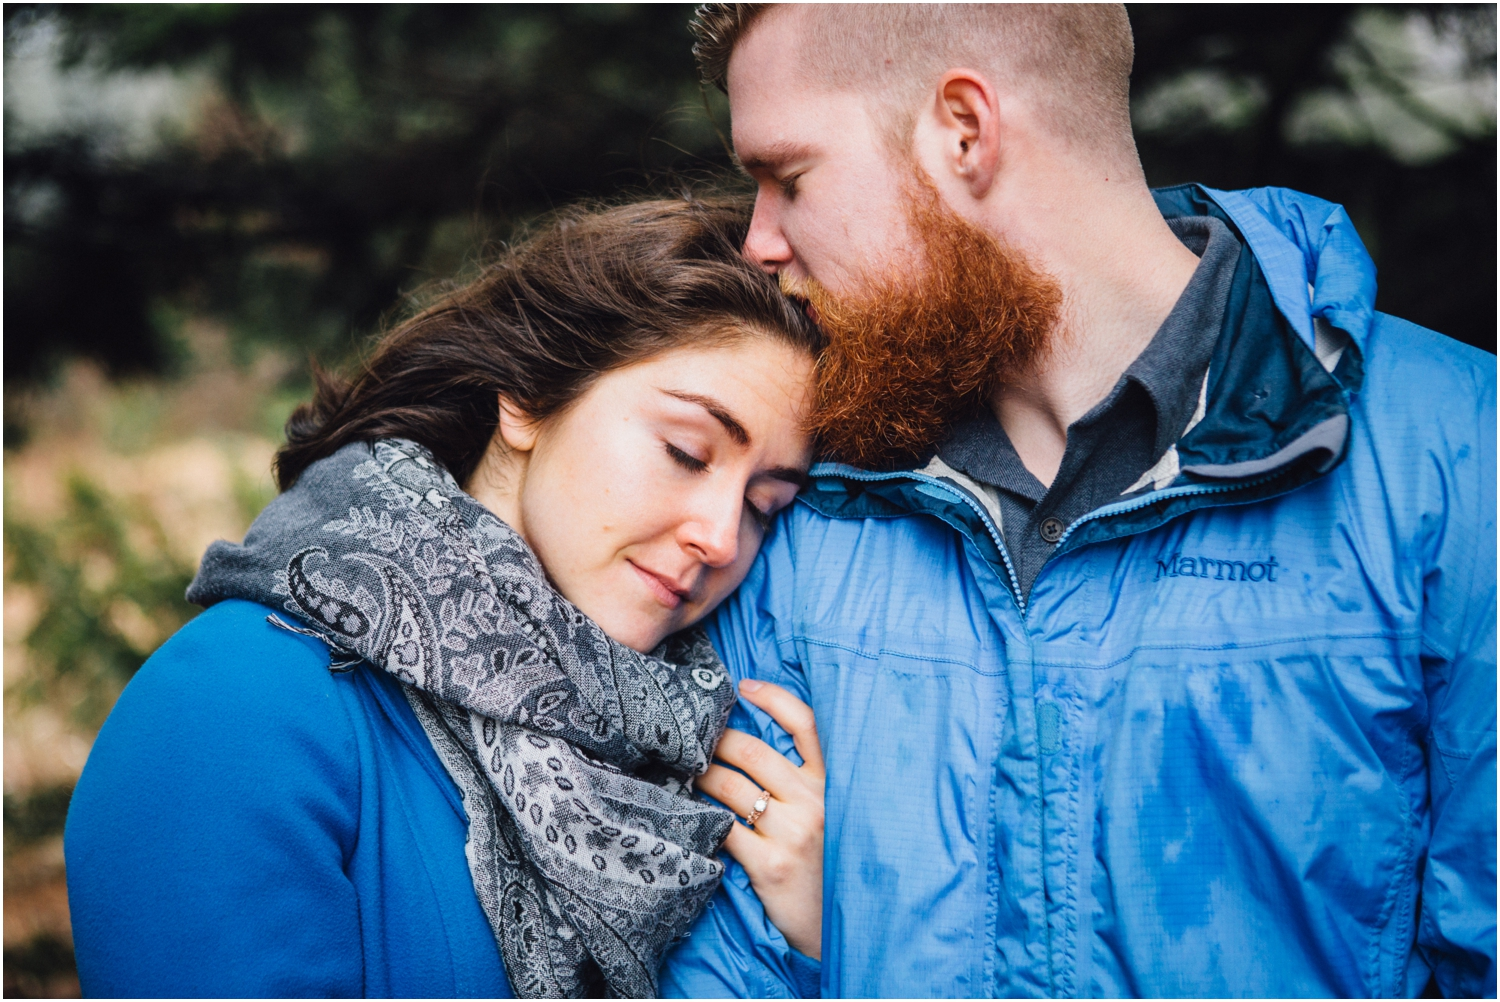 katy-sergent-photography-grayson-highlands-engagement-session-mouth-of-wilson-virginia-damascus-appalachian-trail-tennessee-wedding-elopement_0007.jpg